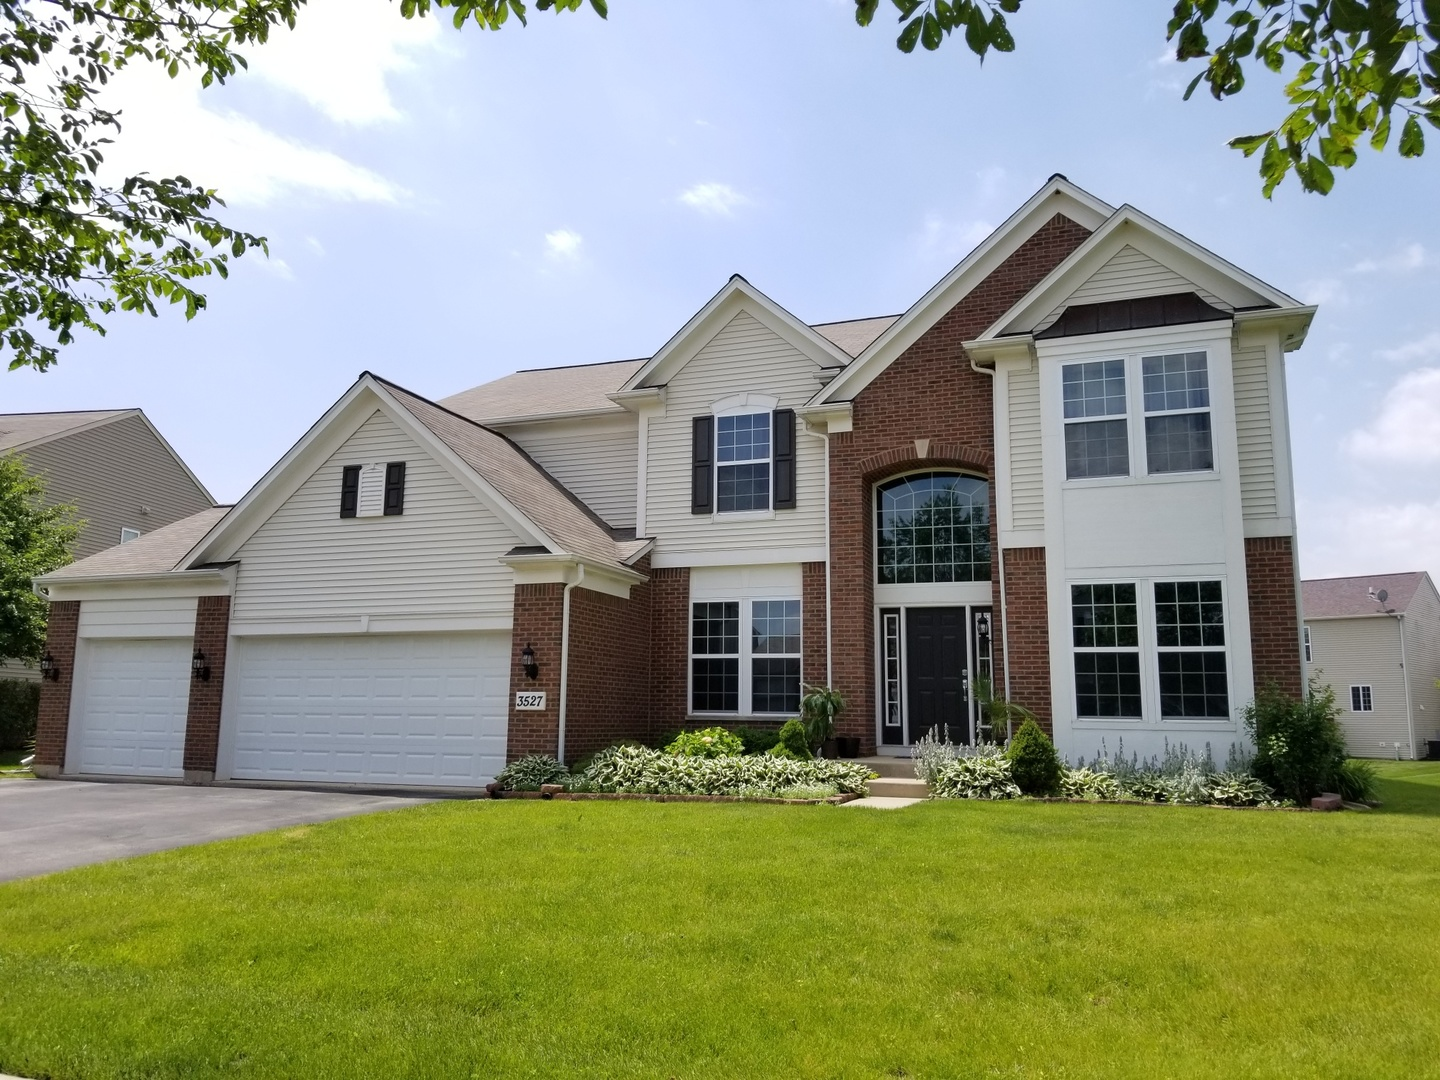 This 3100 square foot, two-story home in Winchester Glen has a vaulted foyer and family room, 4 bedrooms, 2.5 bathrooms, separate living area, dining room, office, laundry room, pantry and an open concept with large kitchen overlooking breakfast area and family room. Close to highway, restaurants, shopping and grocery stores. The subdivision has a walking trail, playground, park, baseball & soccer fields.  All buyer's agents welcome!